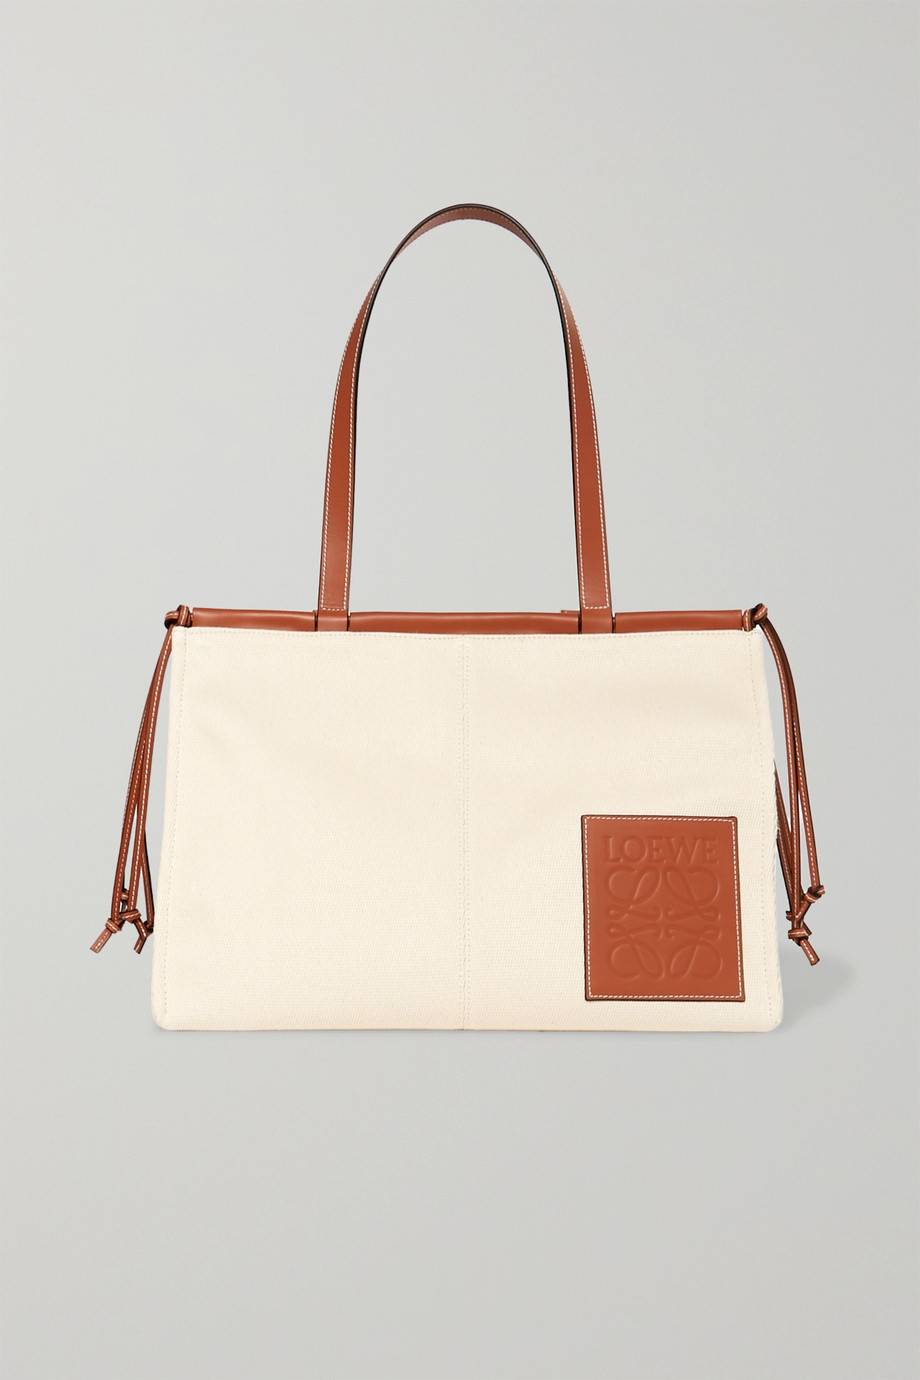 Loewe + Paula's Ibiza Cushion large leather-trimmed canvas tote